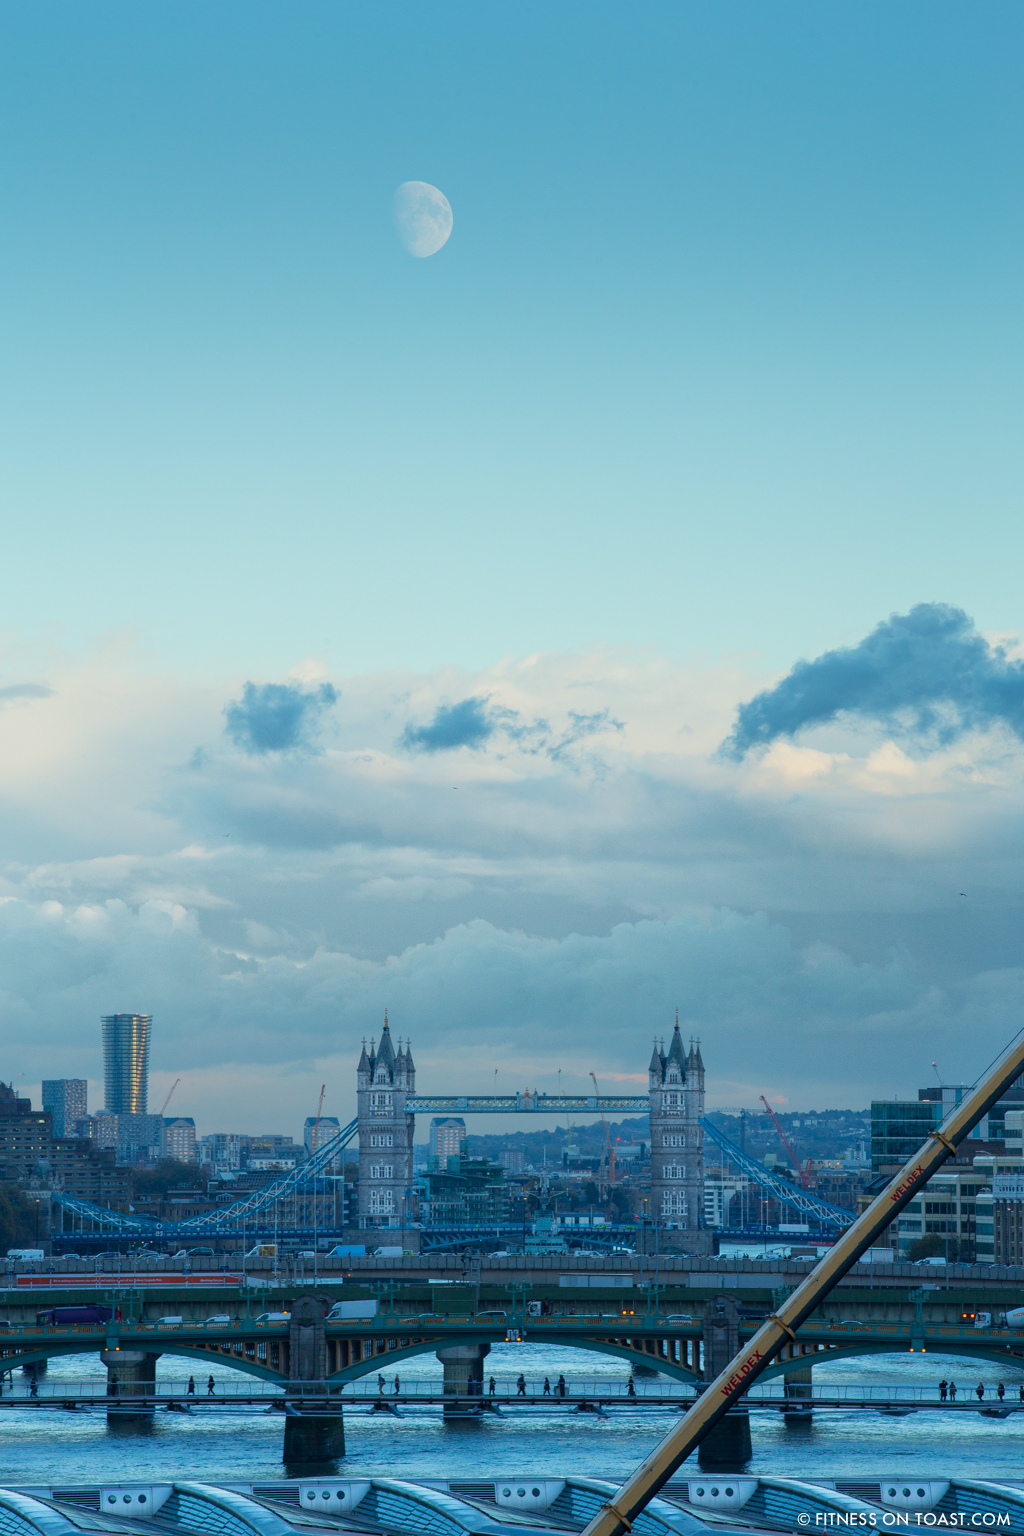 fitness-on-toast-faya-blog-book-girl-fit-in-3-little-brown-behind-the-scenes-bts-london-capital-thames-skyline-view-panoramic-19